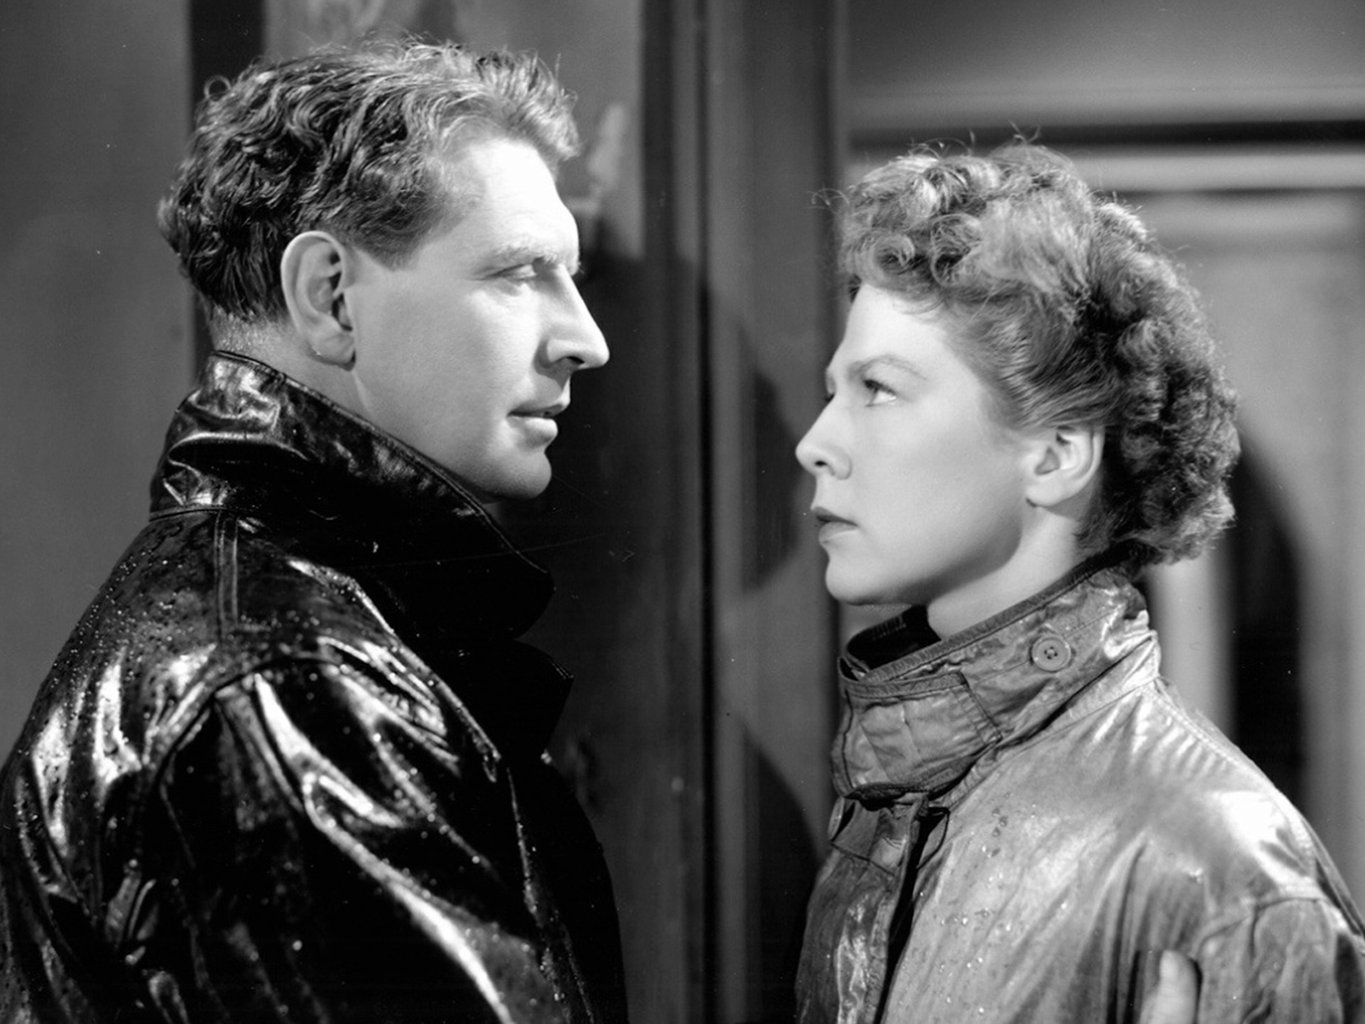 Roger Livesey and Wendy Miller in I KNow Where I'm Going - 1945